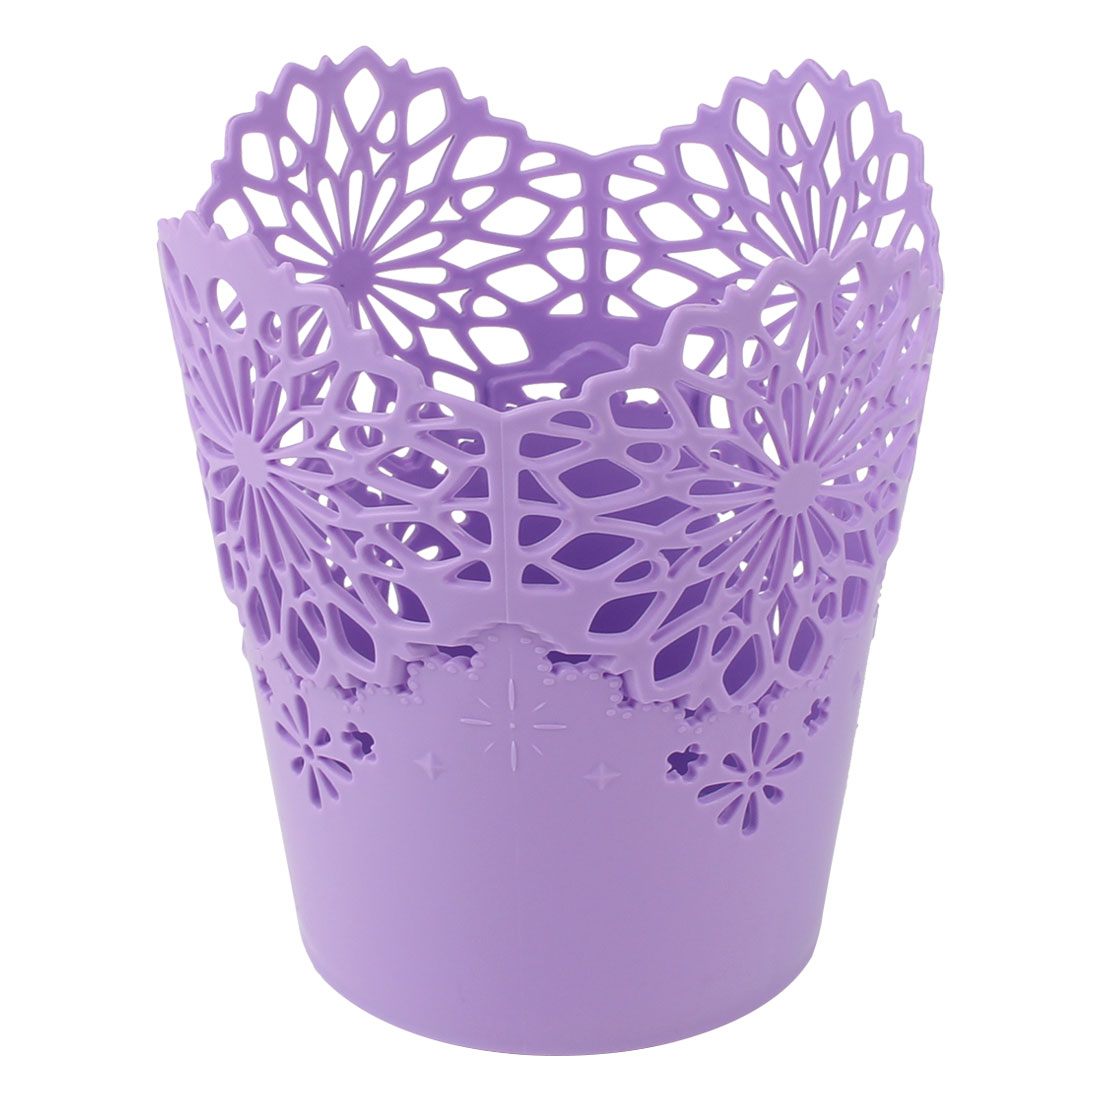 Unique Bargains Desktop 13cm x 14.5cm Purple Plastic Wastepaper Storage Basket Rubbish Bin Trash